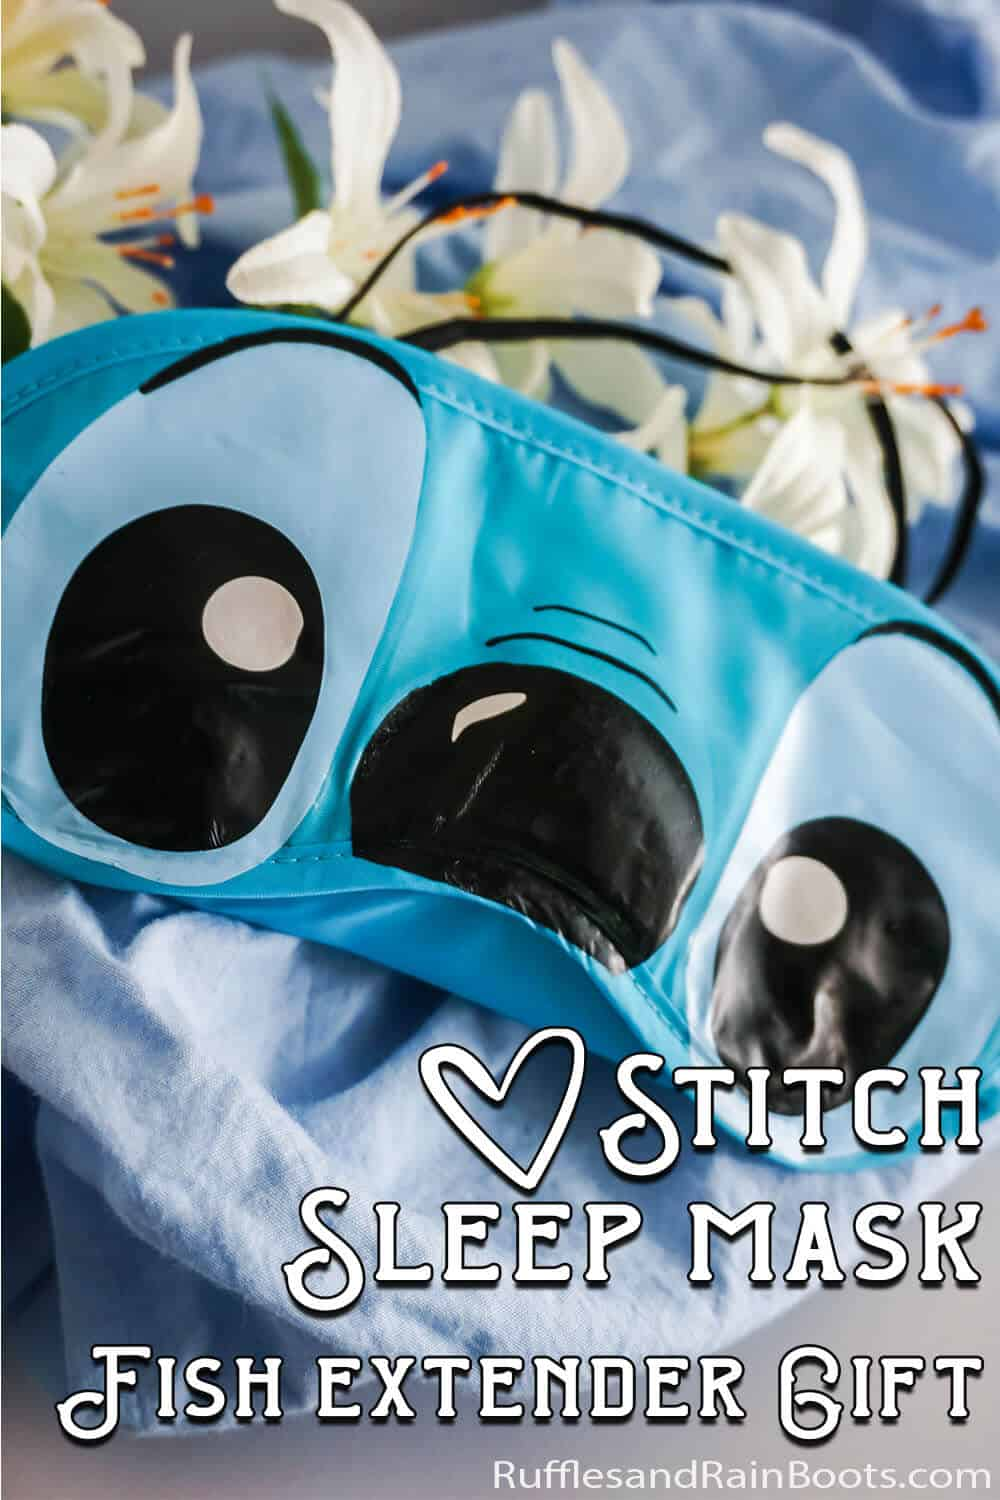 easy stitch mask craft with text which reads stitch sleep mask fish extender gift